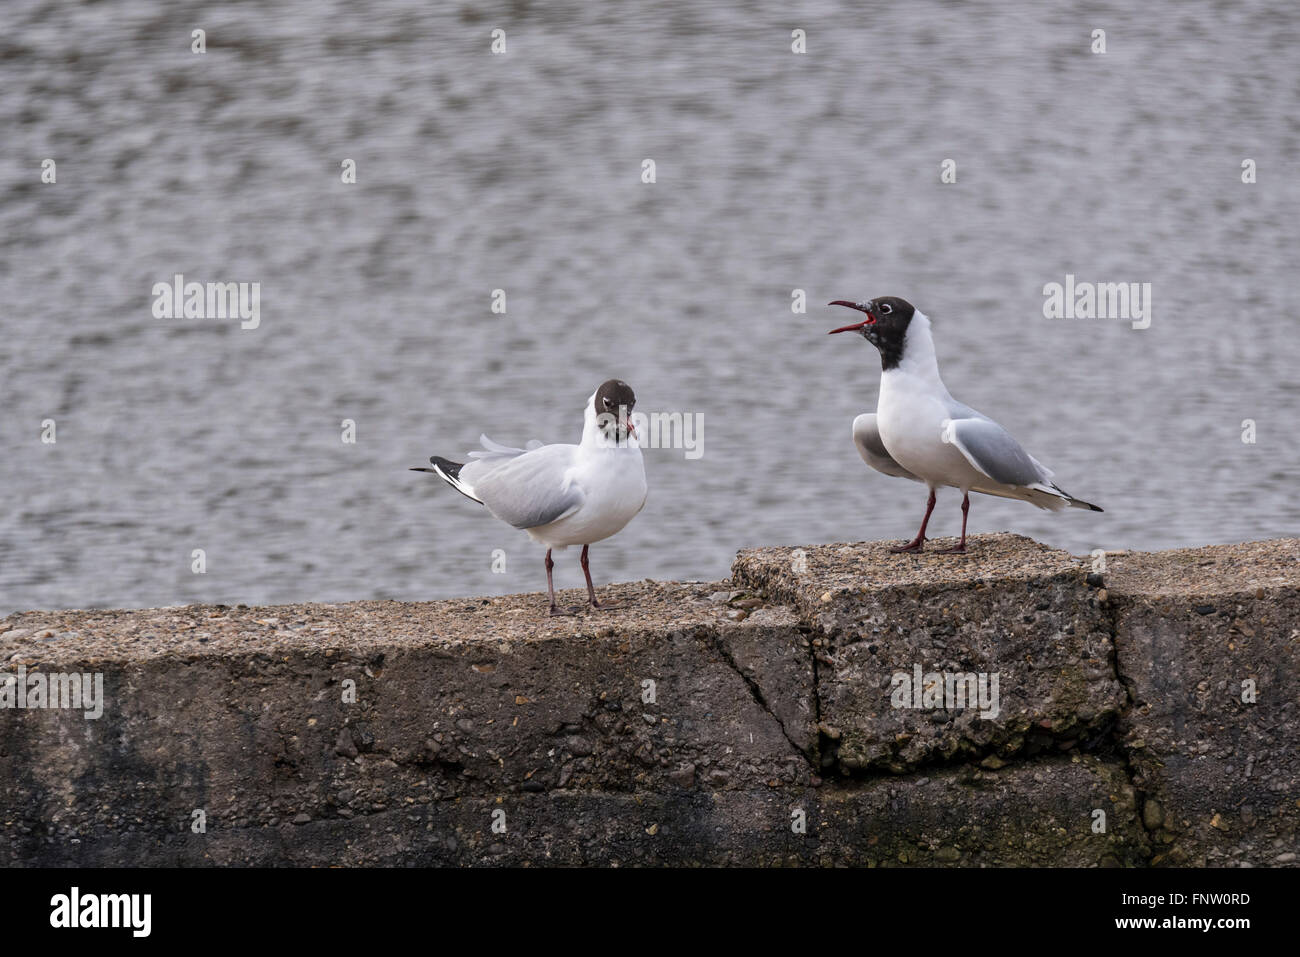 A pair of Black Head Gulls calling loudly in a territorial display - Stock Image